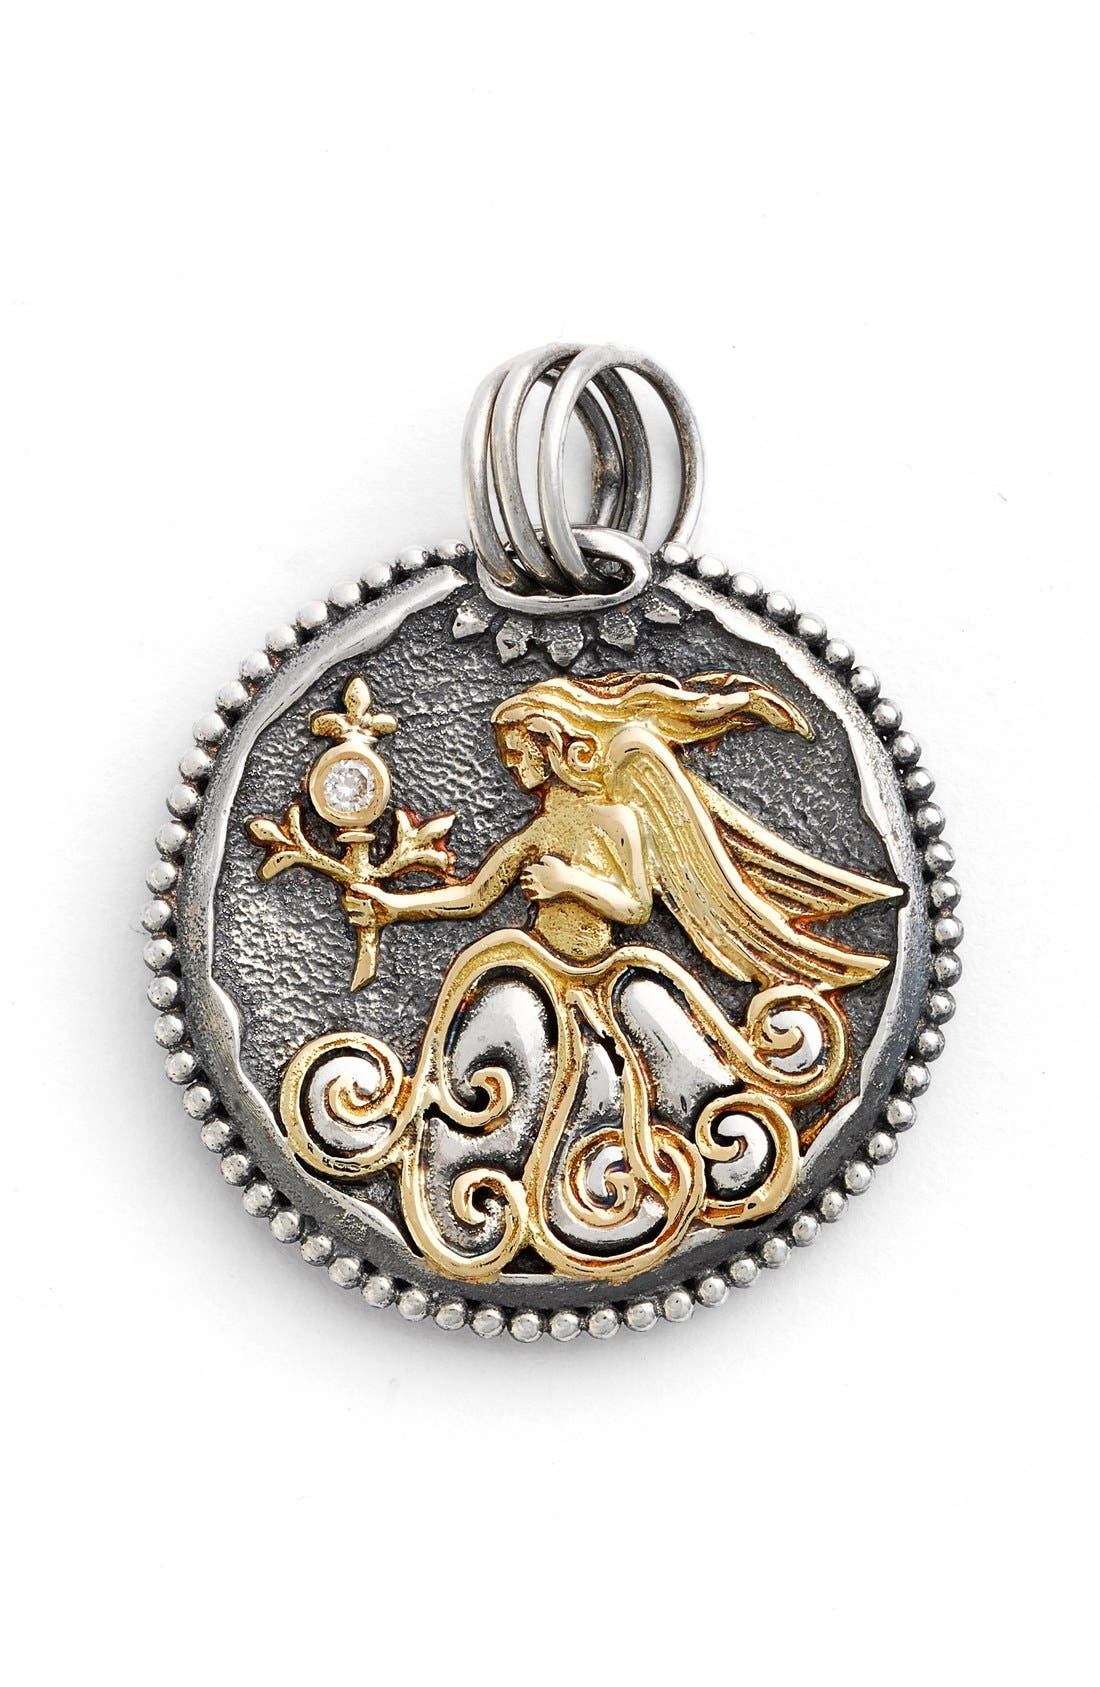 is silver god one lion cross sterling carved konstantino pendant image